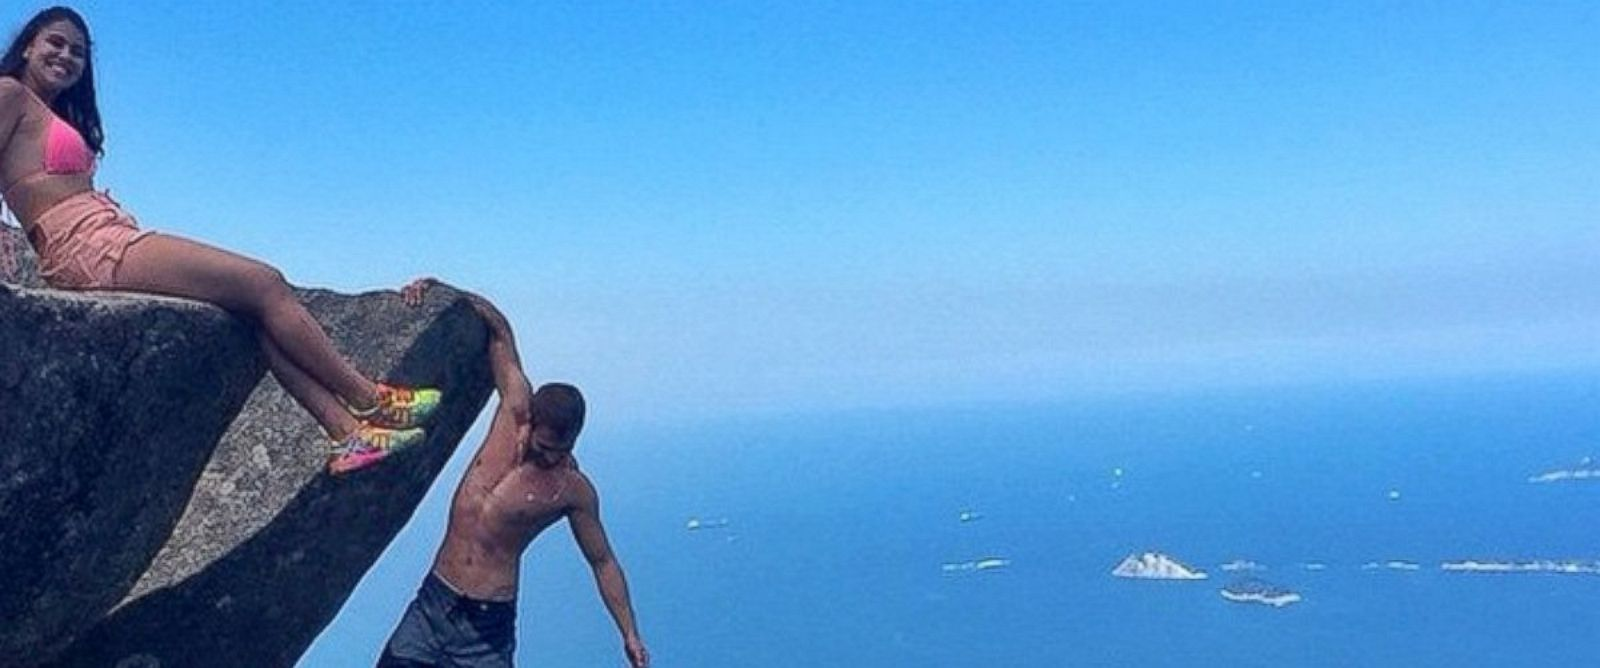 PHOTO: Among their many other excursions, the two dangled off an almost 3,000-foot cliff.